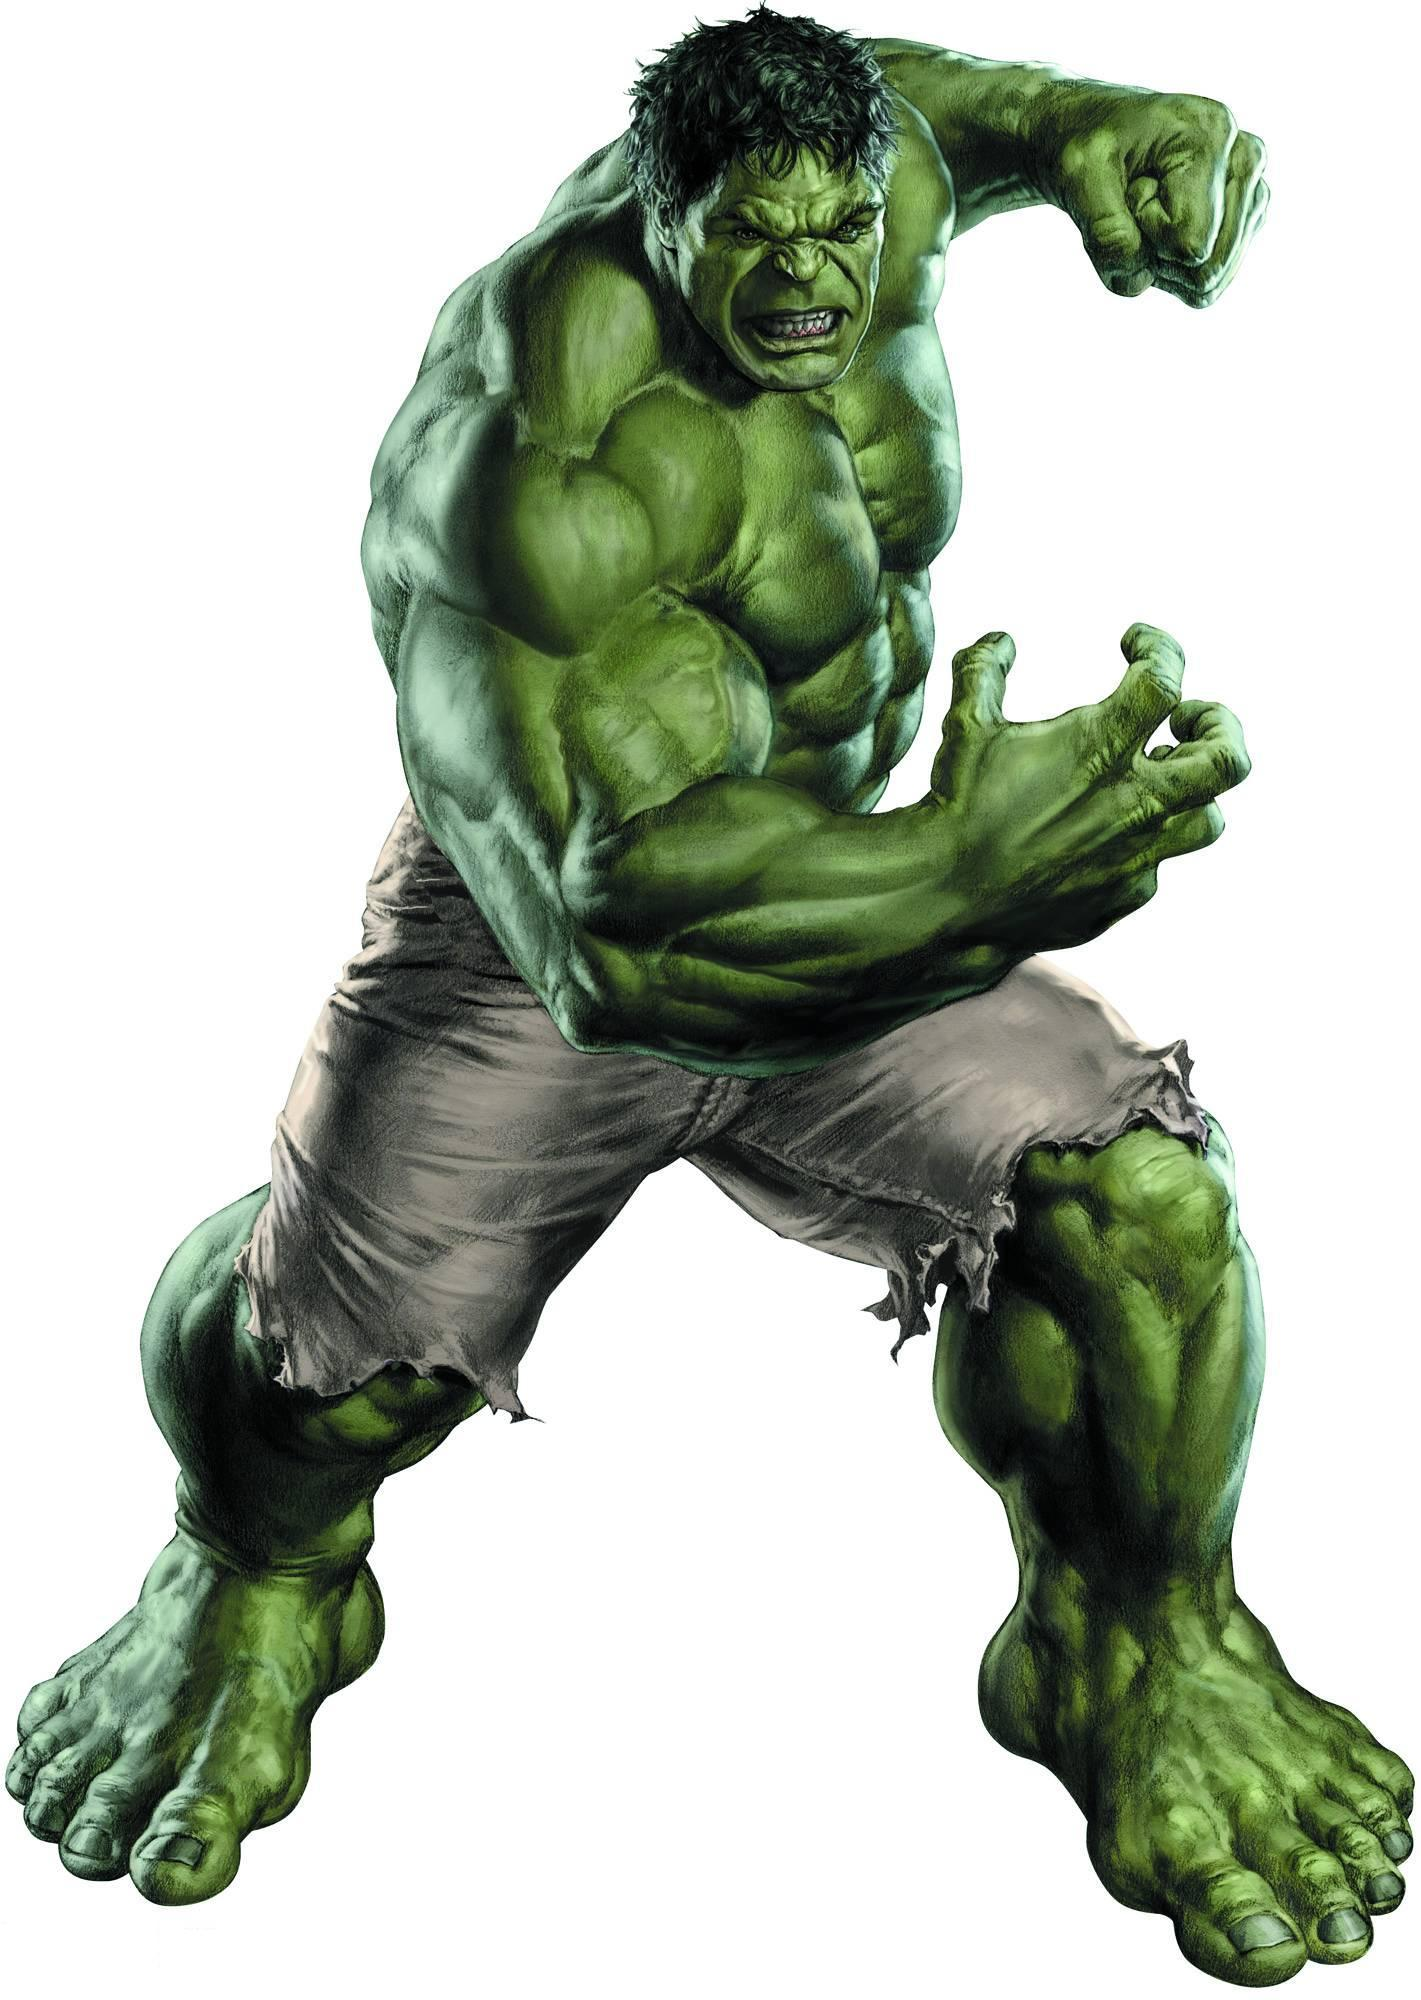 Hulk Green-Skinned Monster